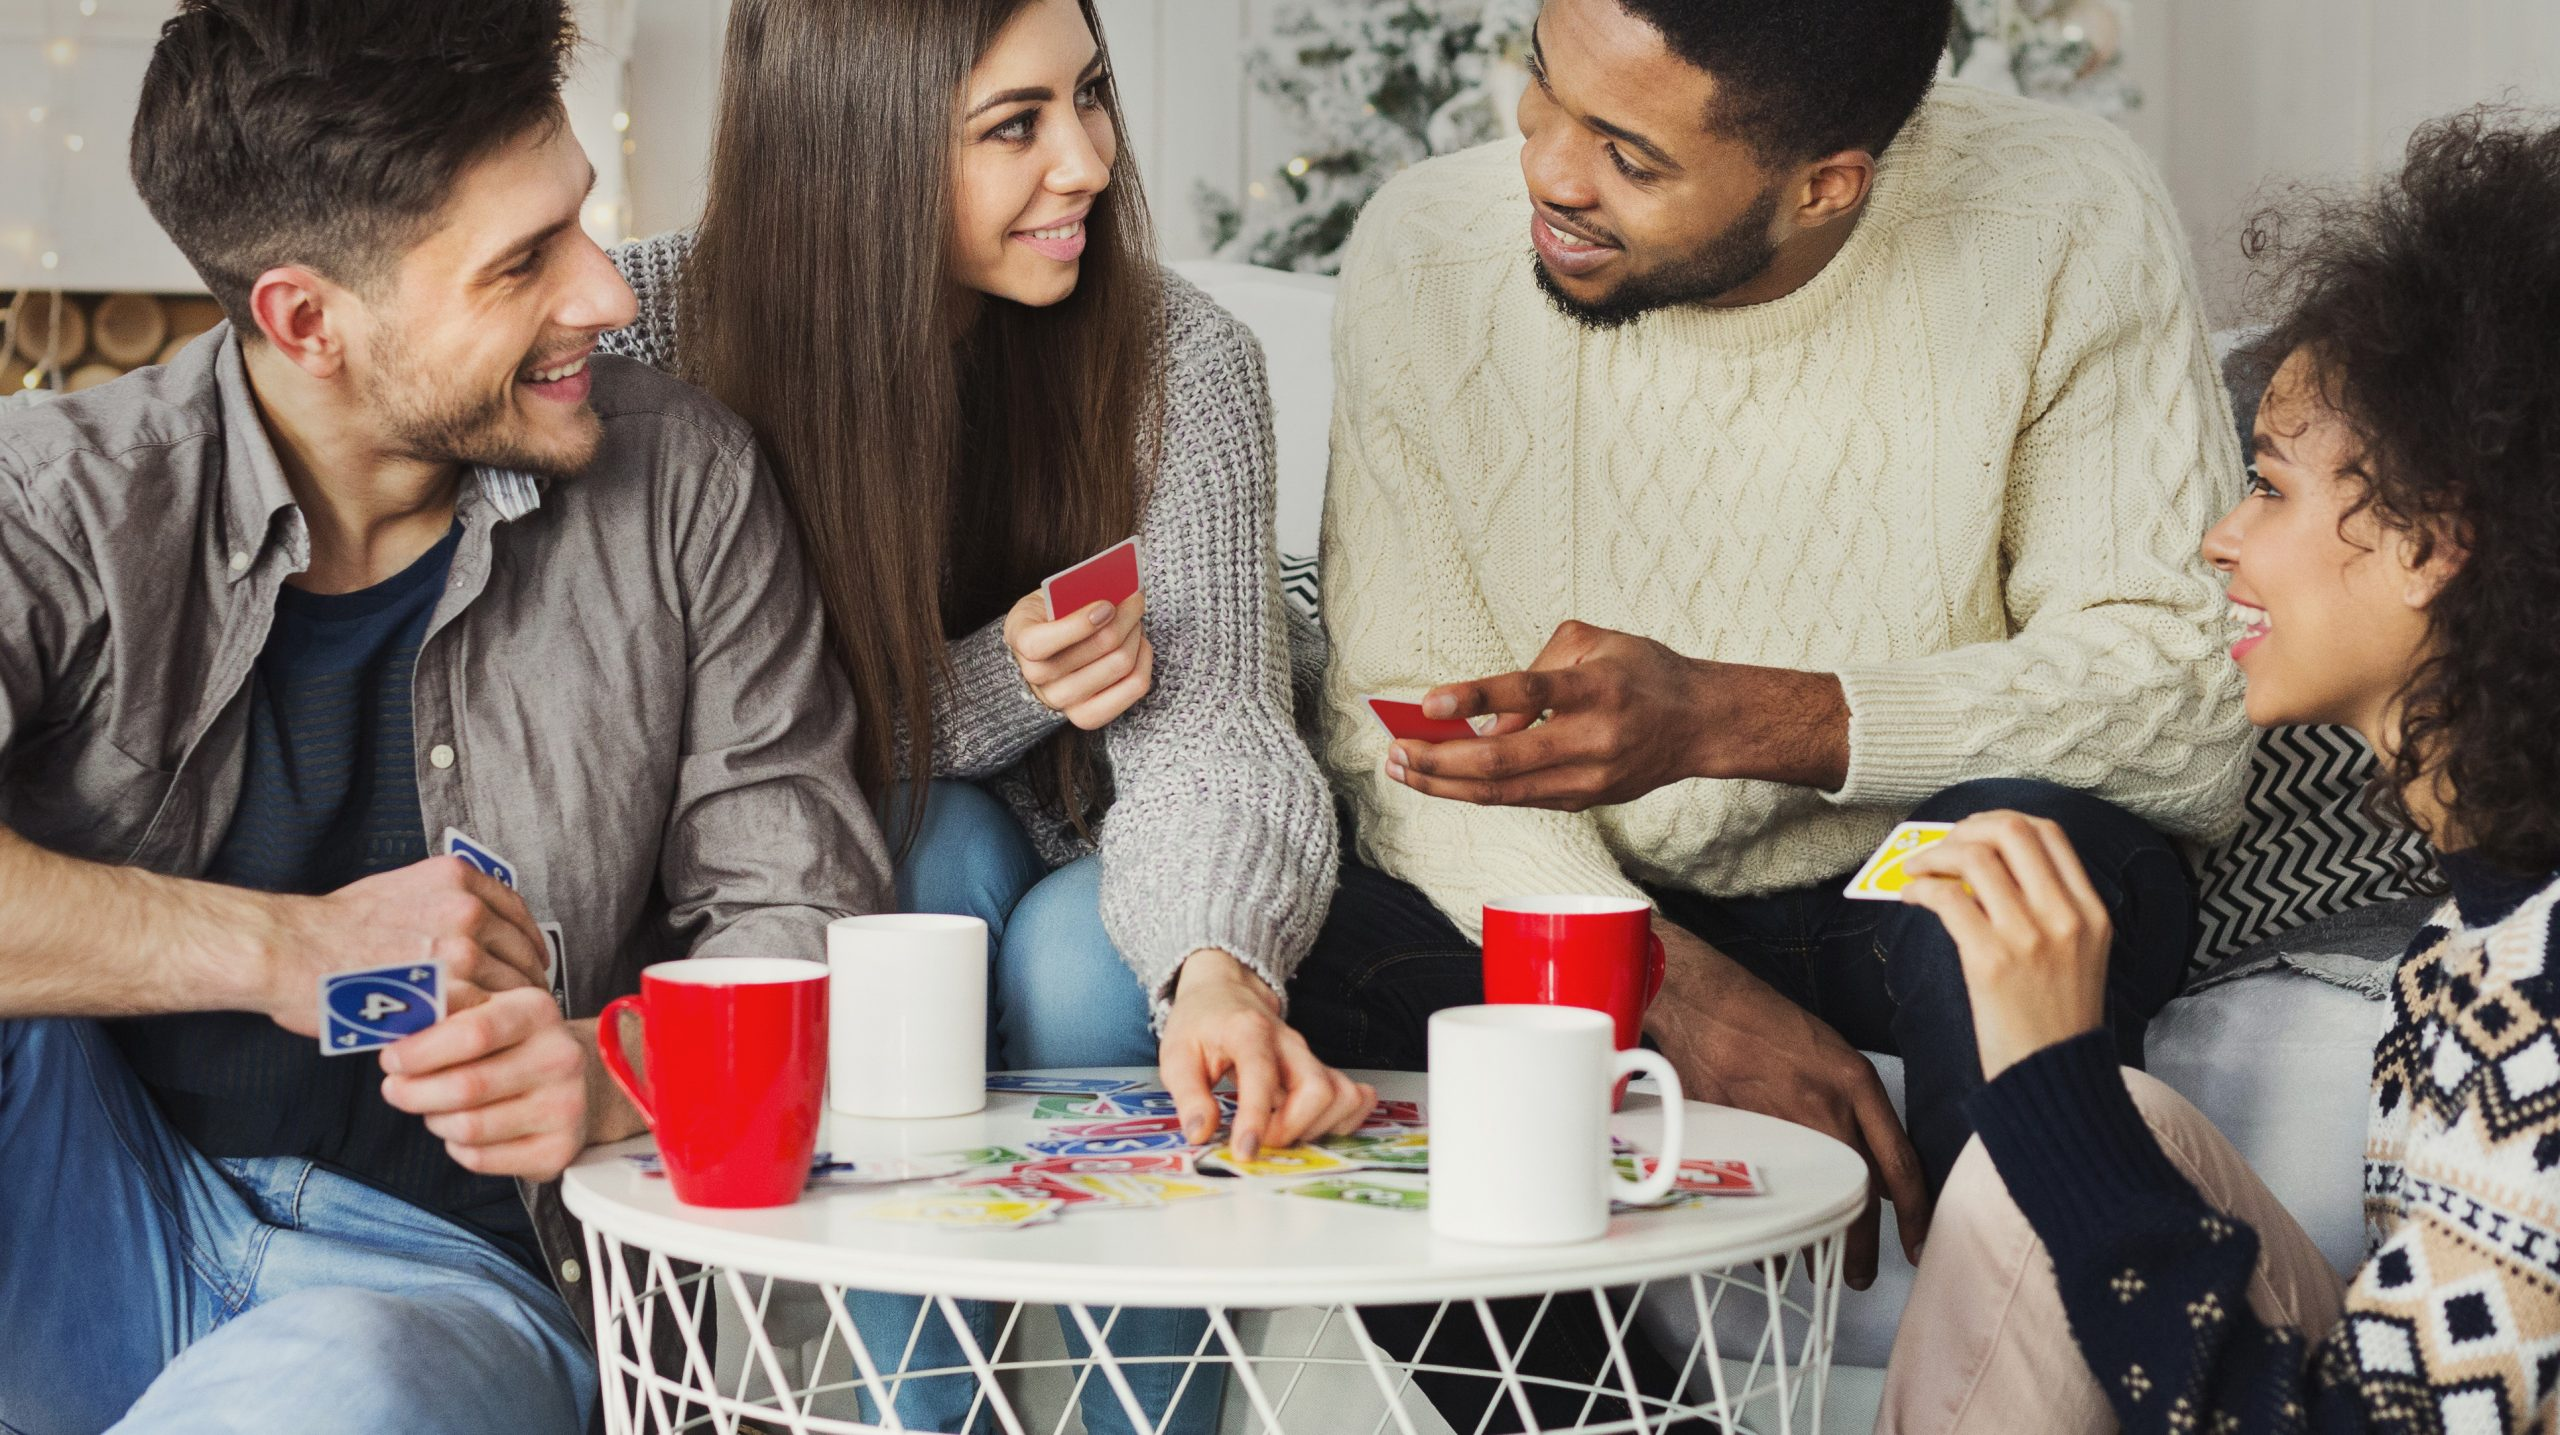 Multiracial friends having fun and playing game of cards UNO against christmas tree